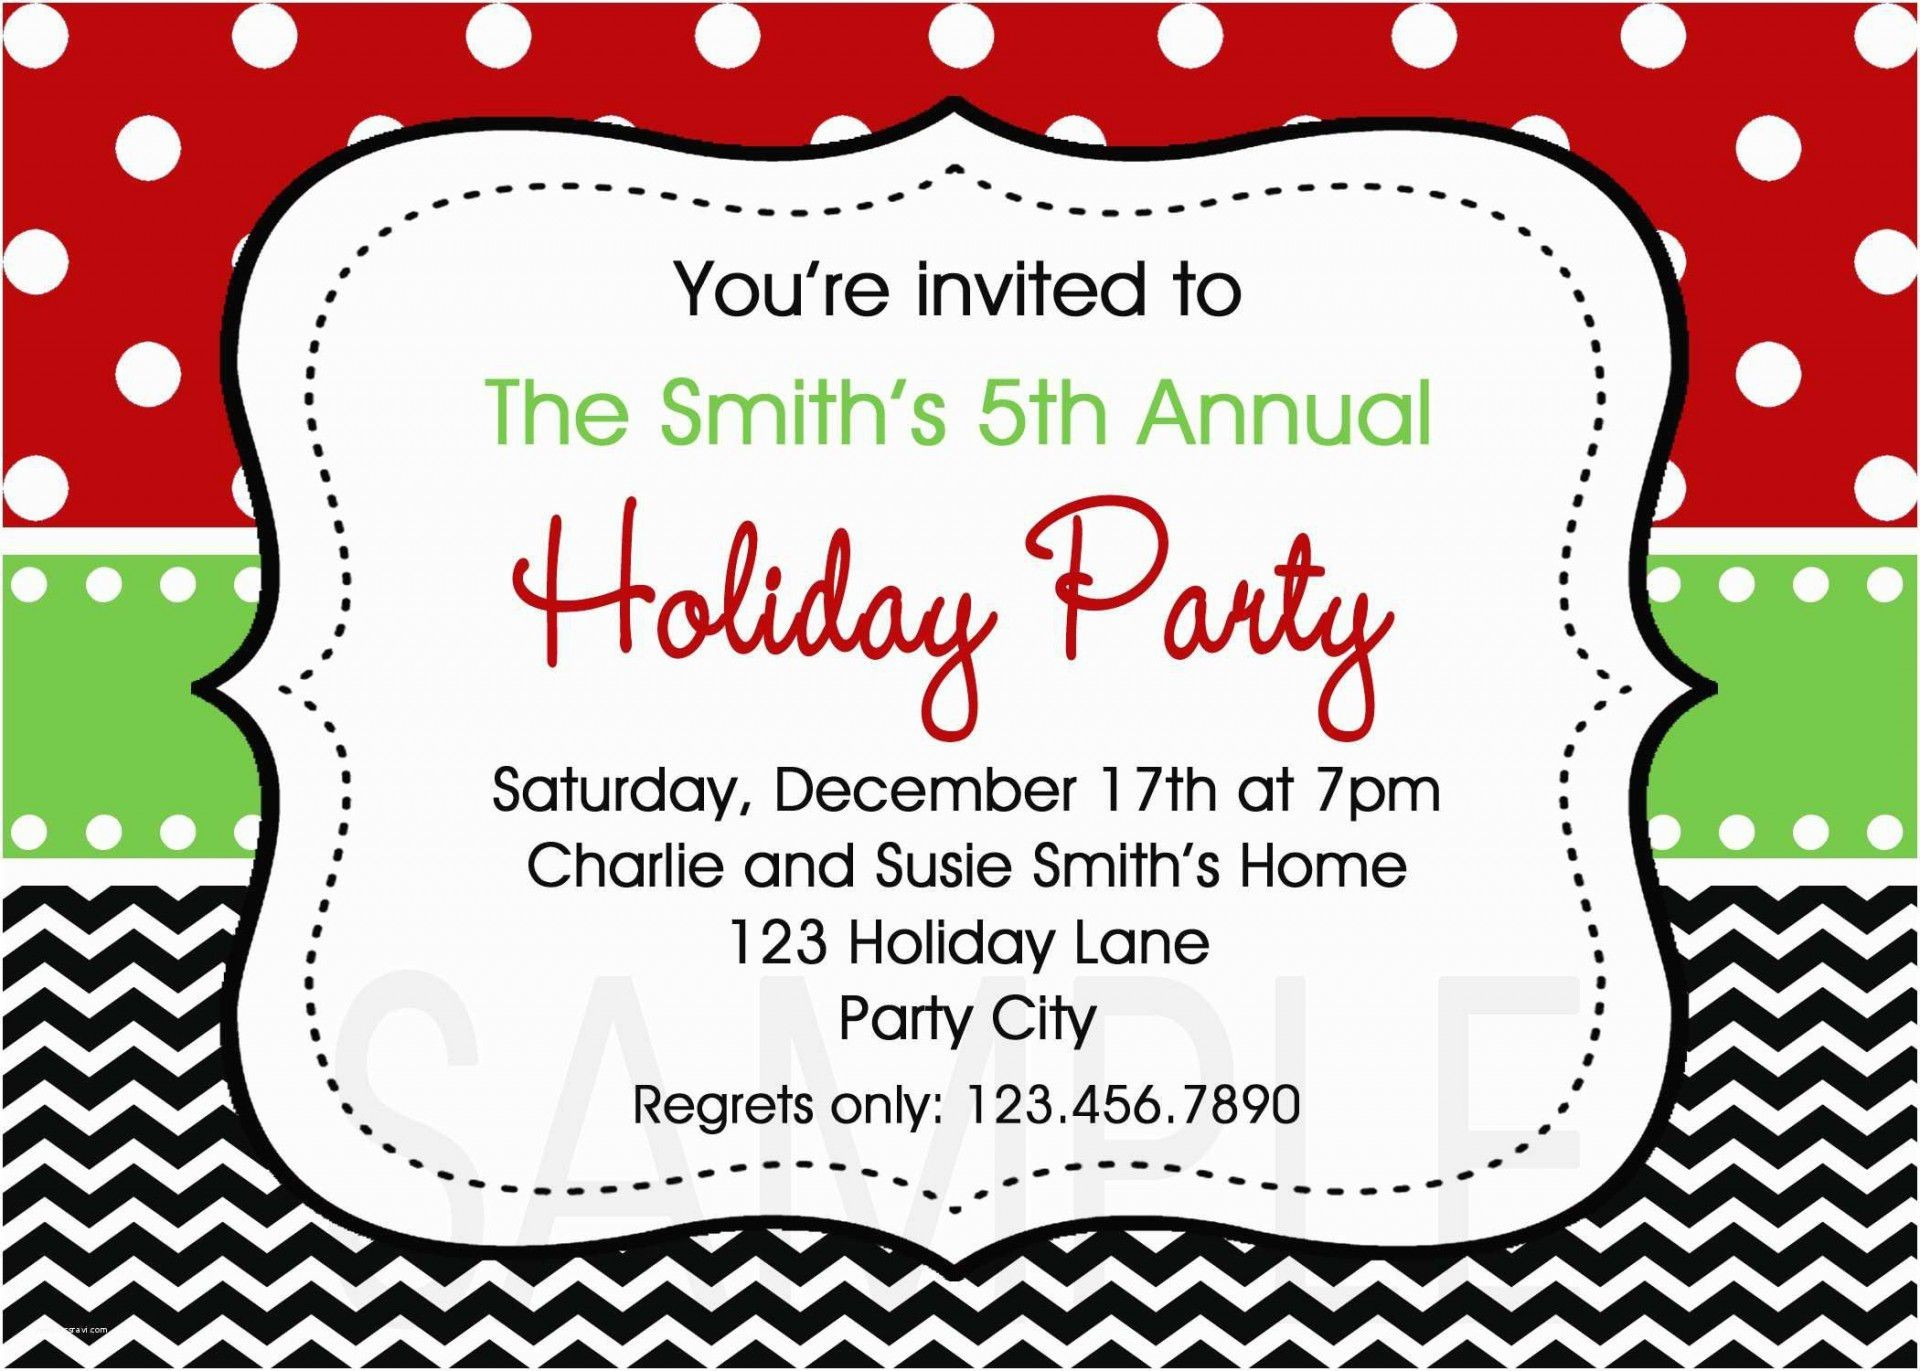 002 Singular Free Holiday Invite Template Sample  Templates Party Ticket For Email1920